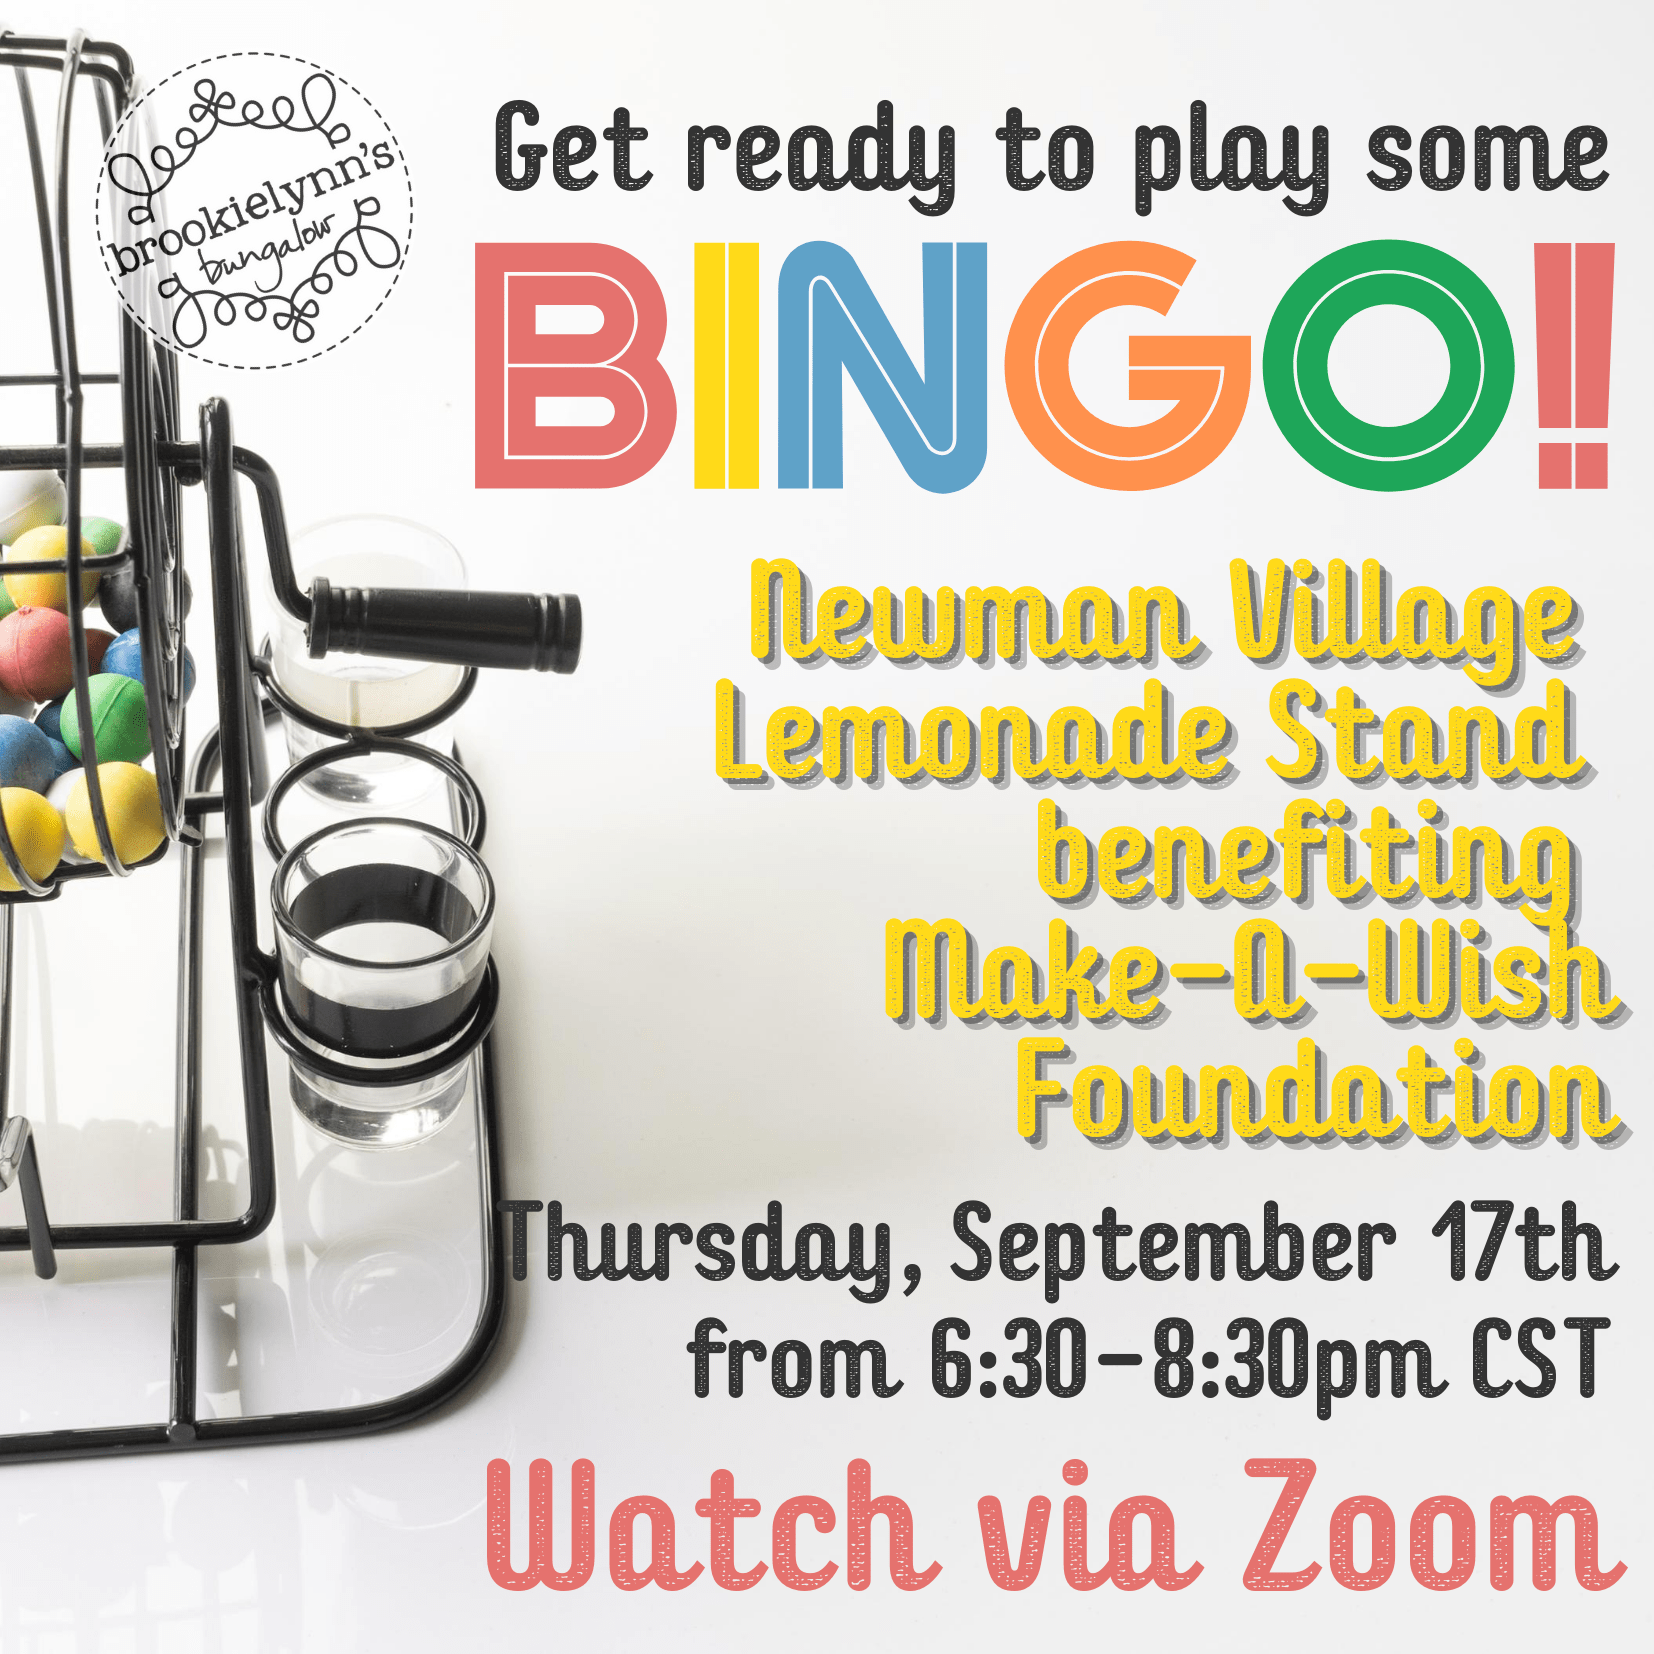 Virtual Bingo Fundraiser Presented by Newman Village Lemonade Stand Benefiting Make a Wish Foundation